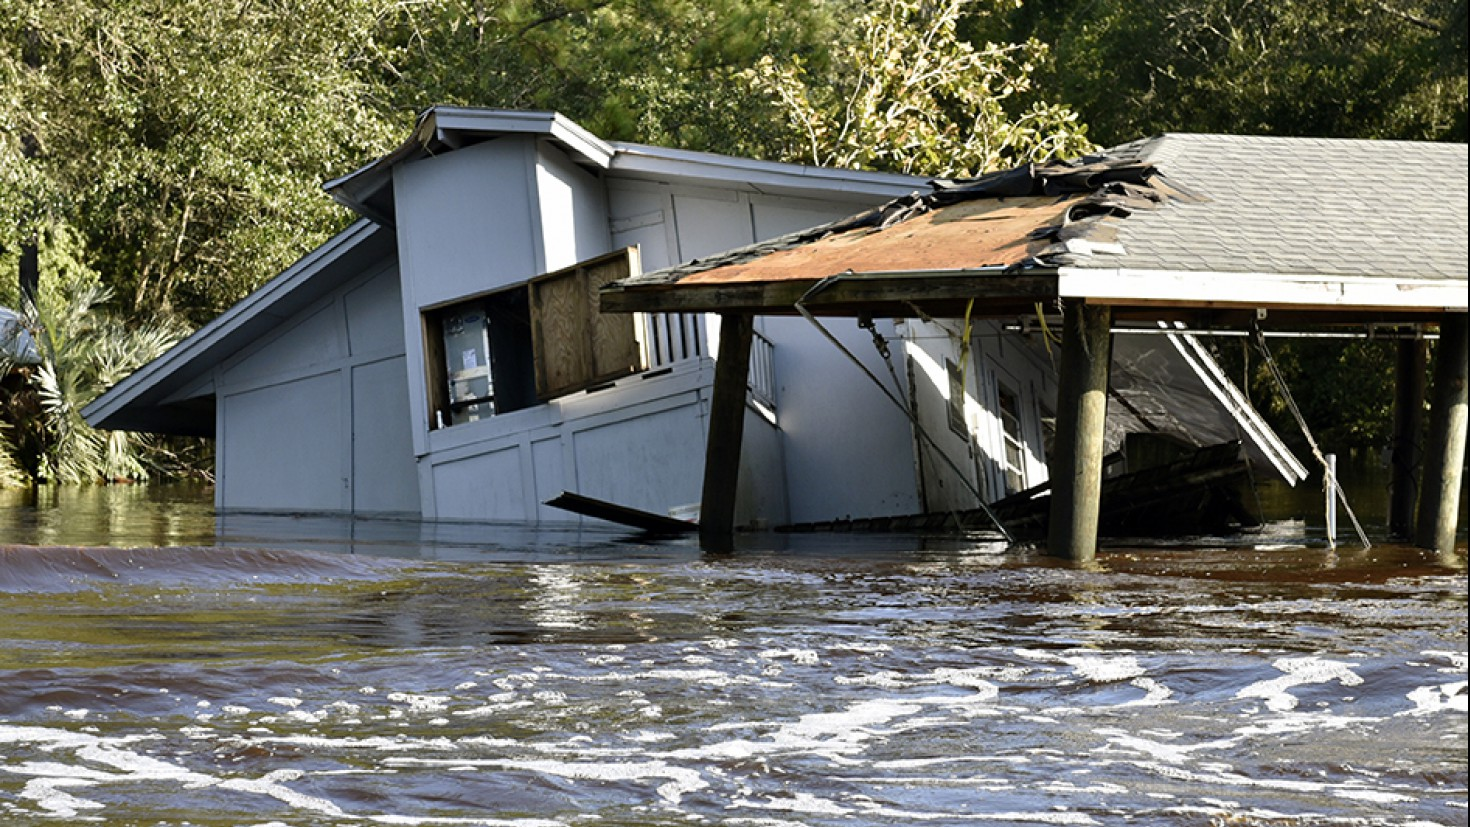 Damages after hurricane IRMA in Florida, US. photo: Florida Fish and Wildlife @ Flickr